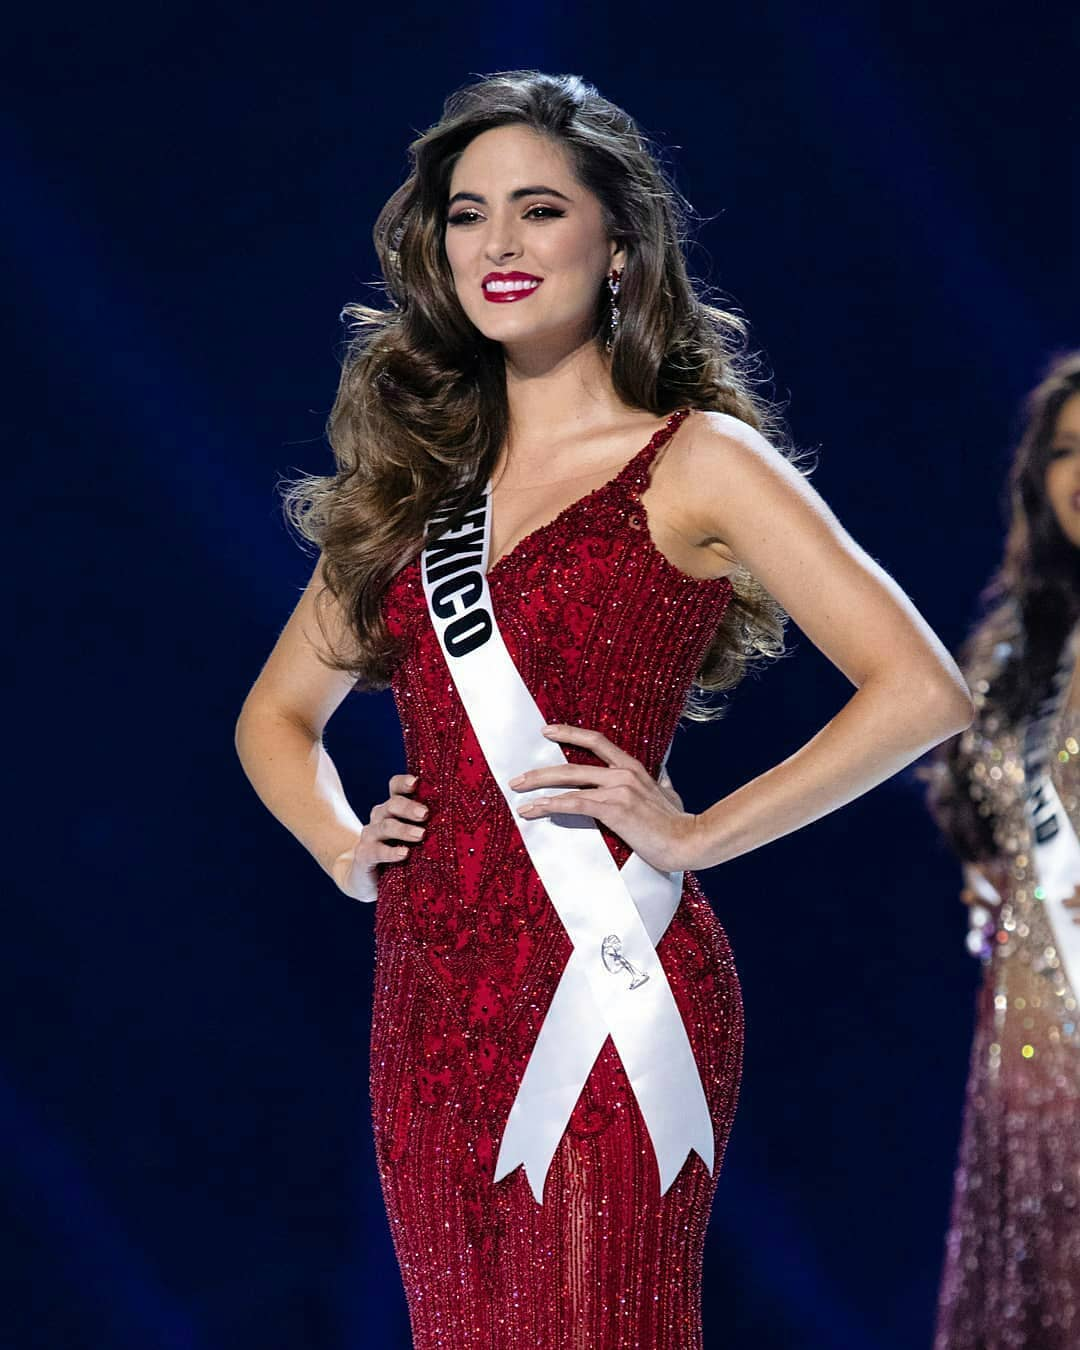 sofia aragon, 2nd runner-up de miss universe 2019. - Página 15 77367910